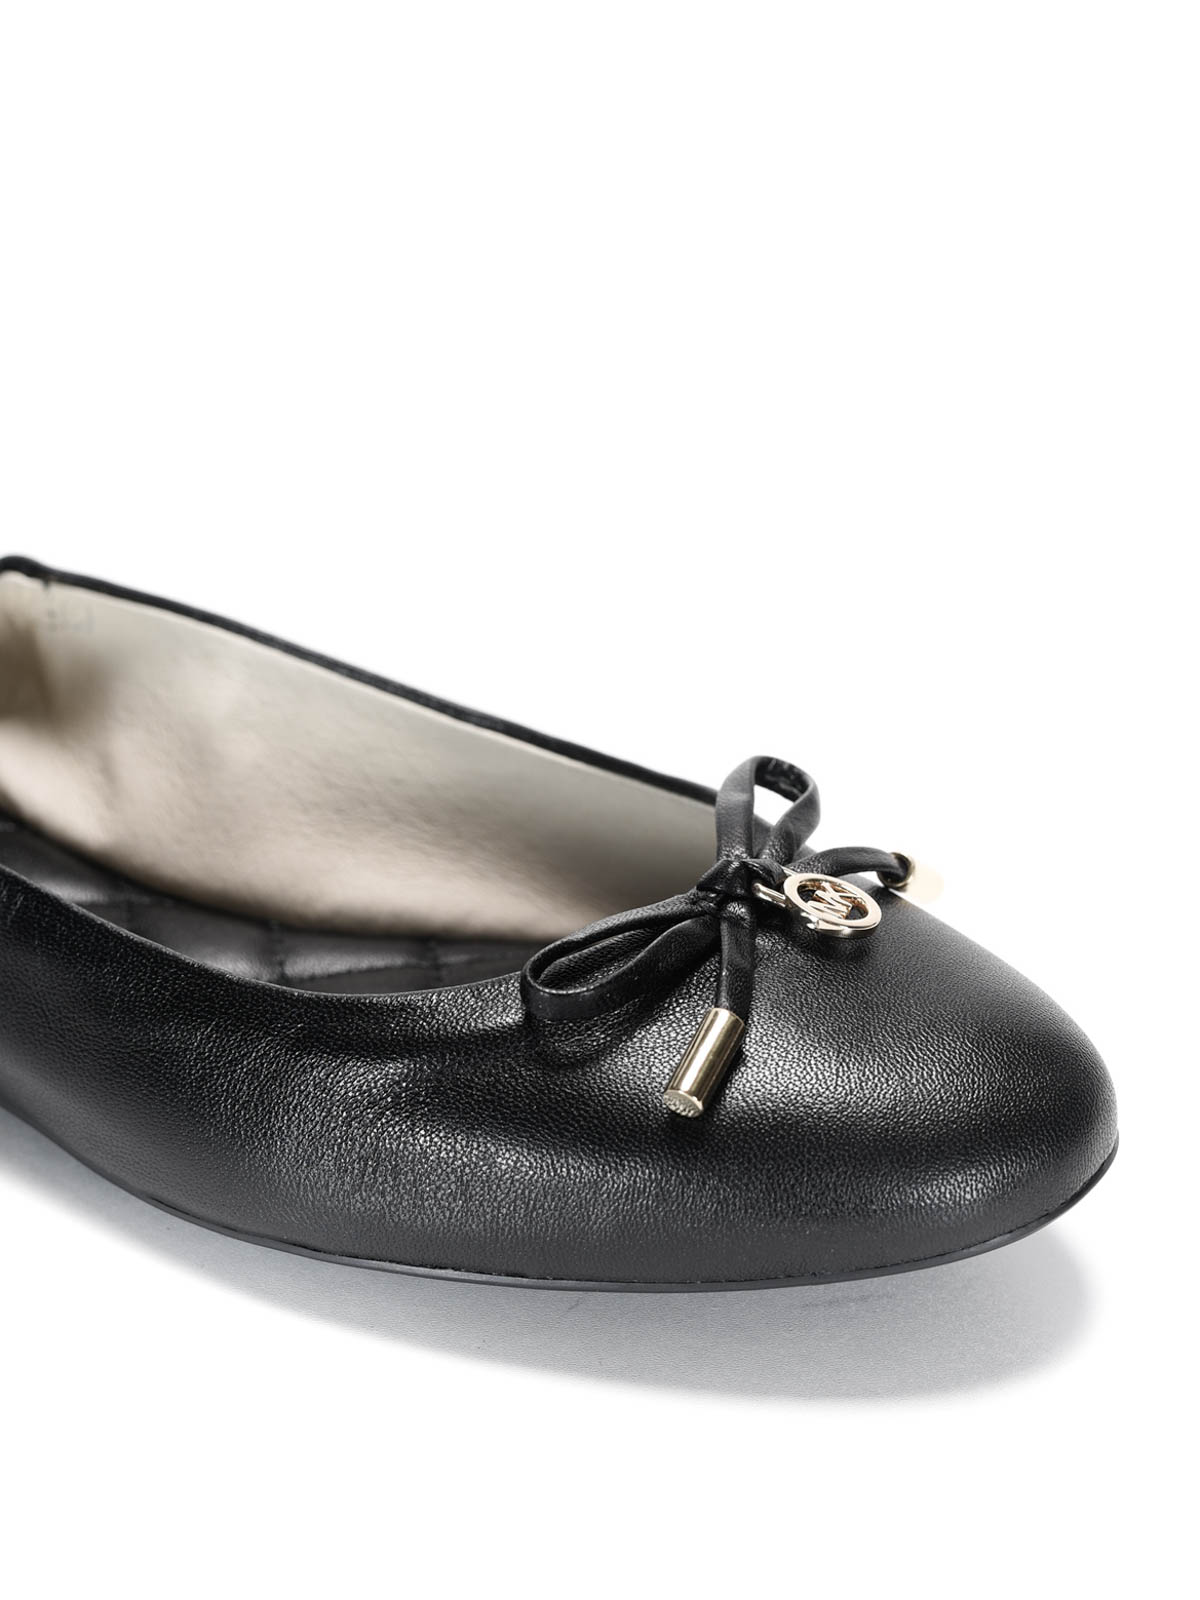 Melody Leather Flat Shoes By Michael Kors IKRIX